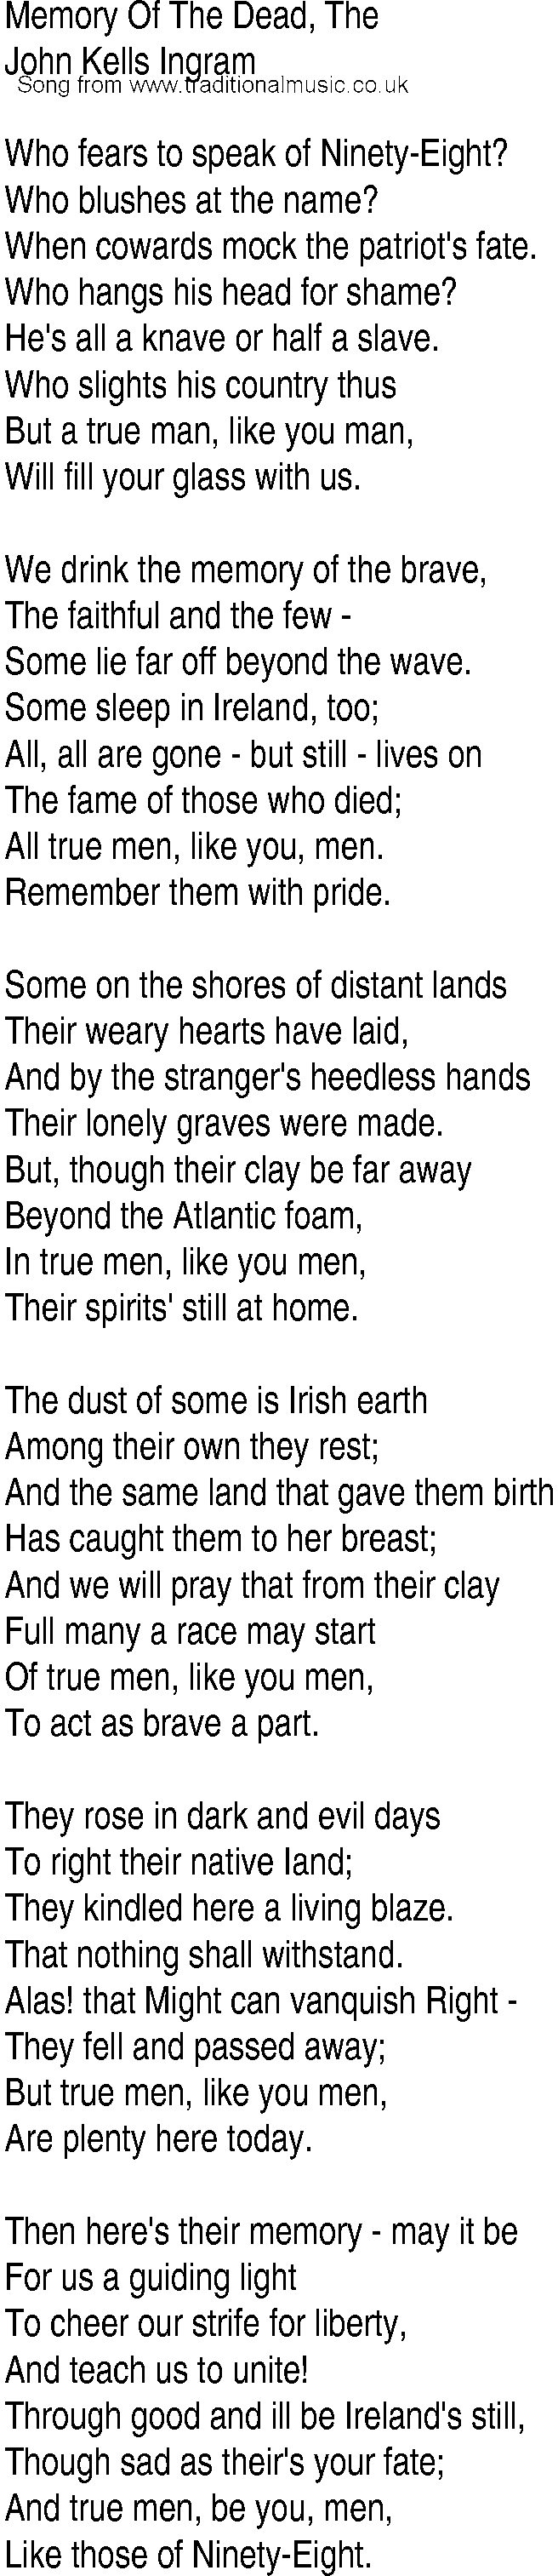 Irish Music, Song and Ballad Lyrics for: Memory Of The Dead